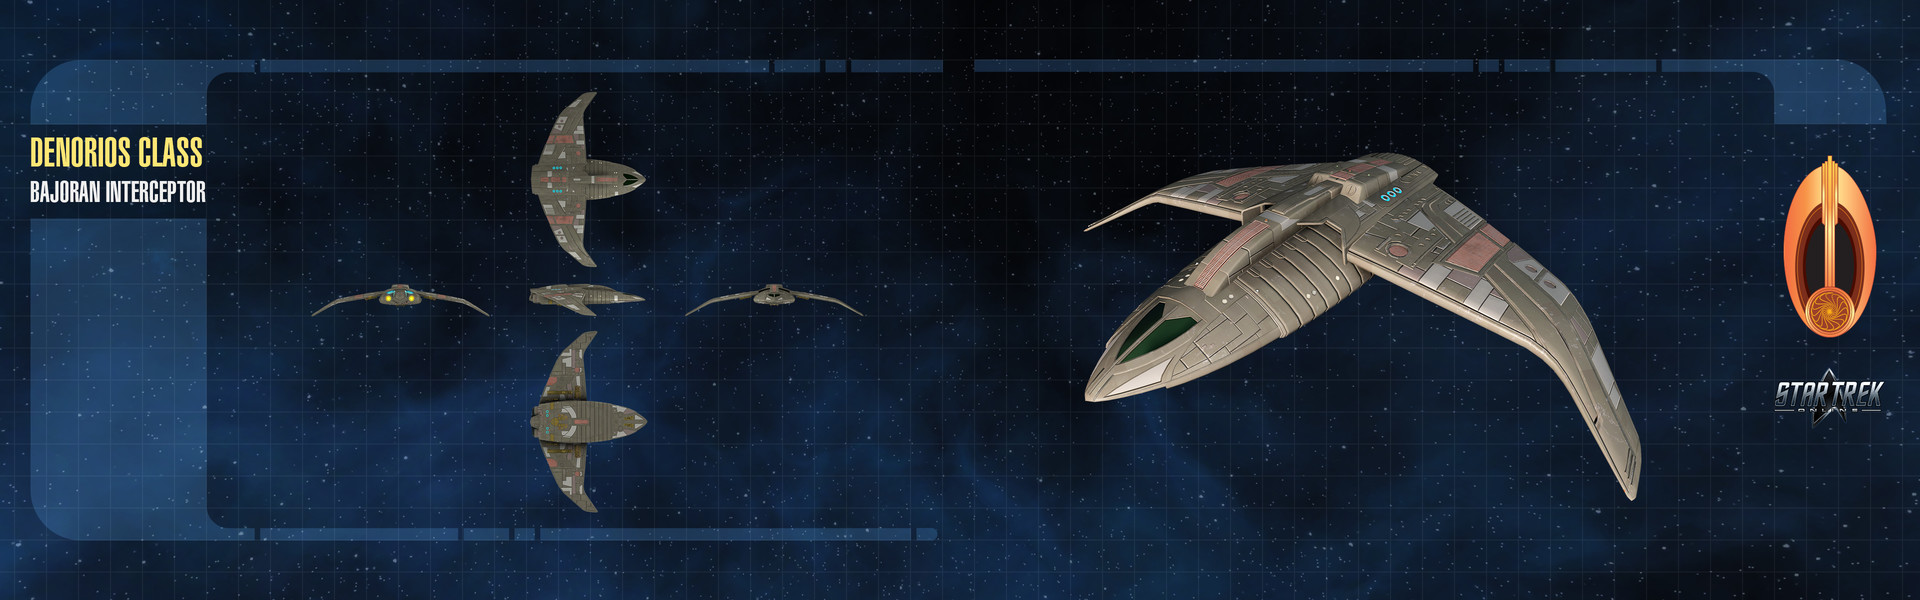 Thomas marrone wallpaper dual ship bajoran interceptor